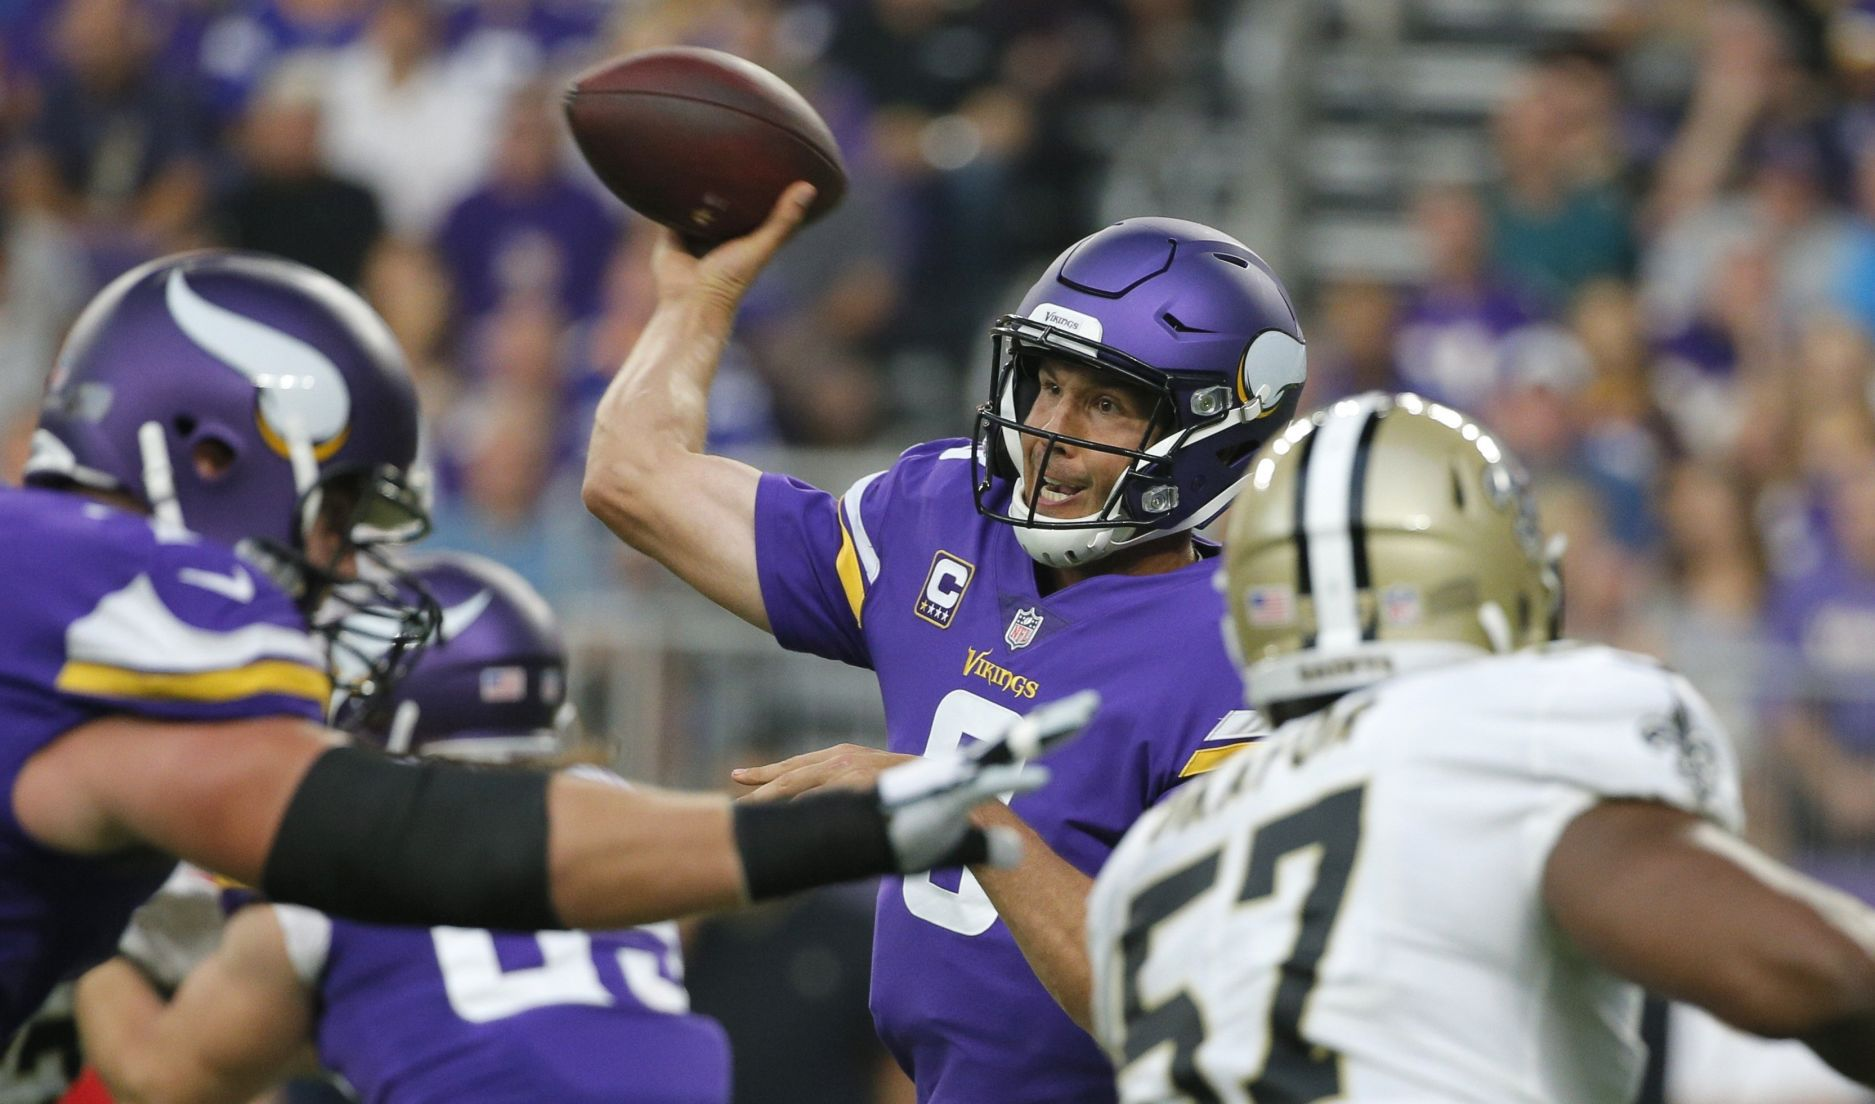 Vikings' winners and losers from 29-19 win against Saints